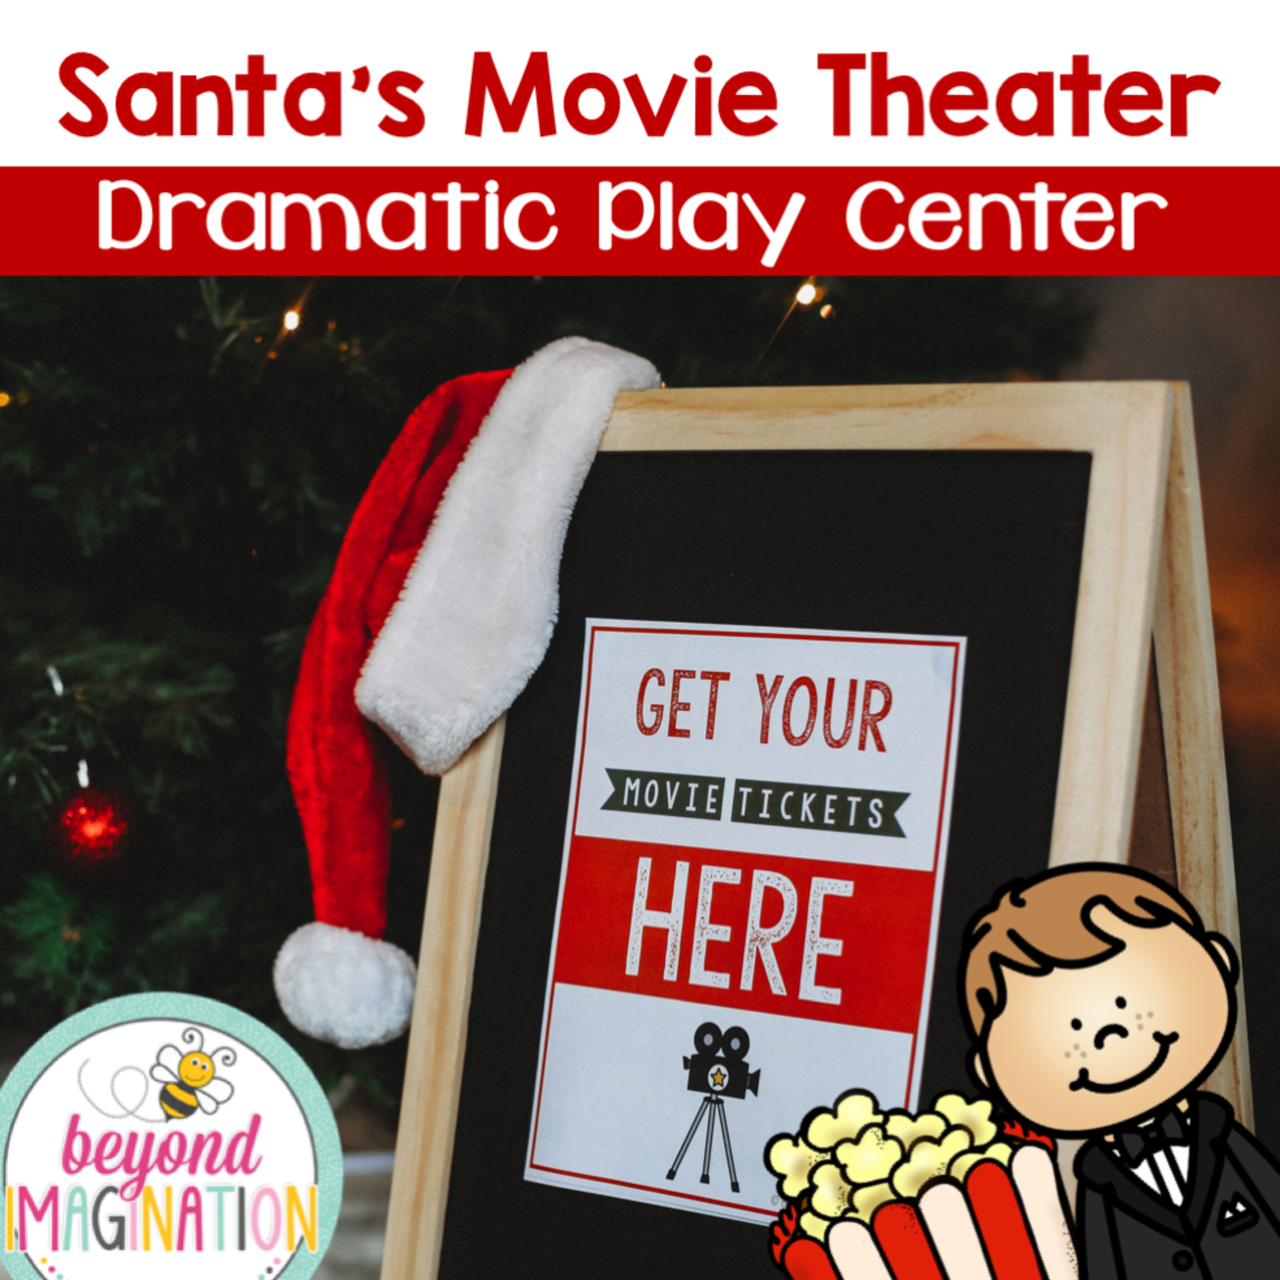 Santa's Movie Theater